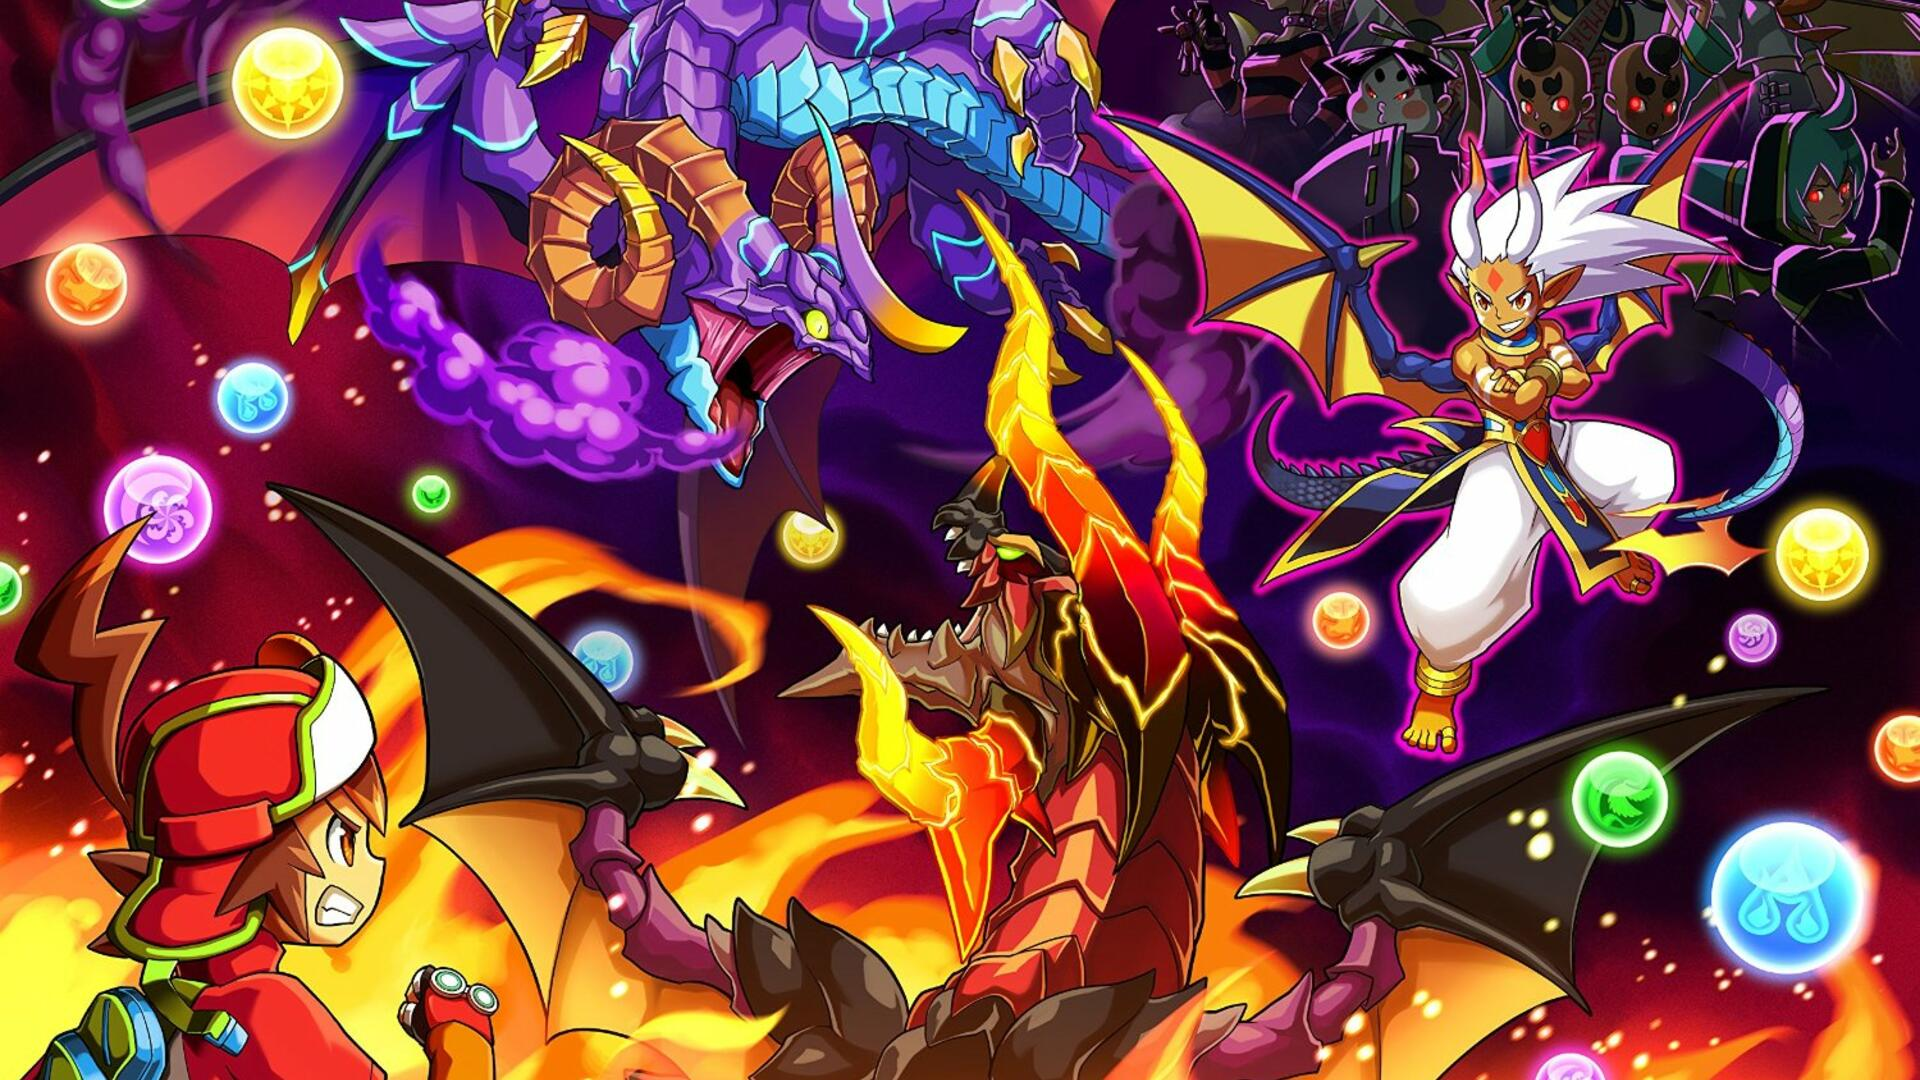 Puzzle and Dragons Z and Super Mario Edition 3DS Review: Match Three Duo